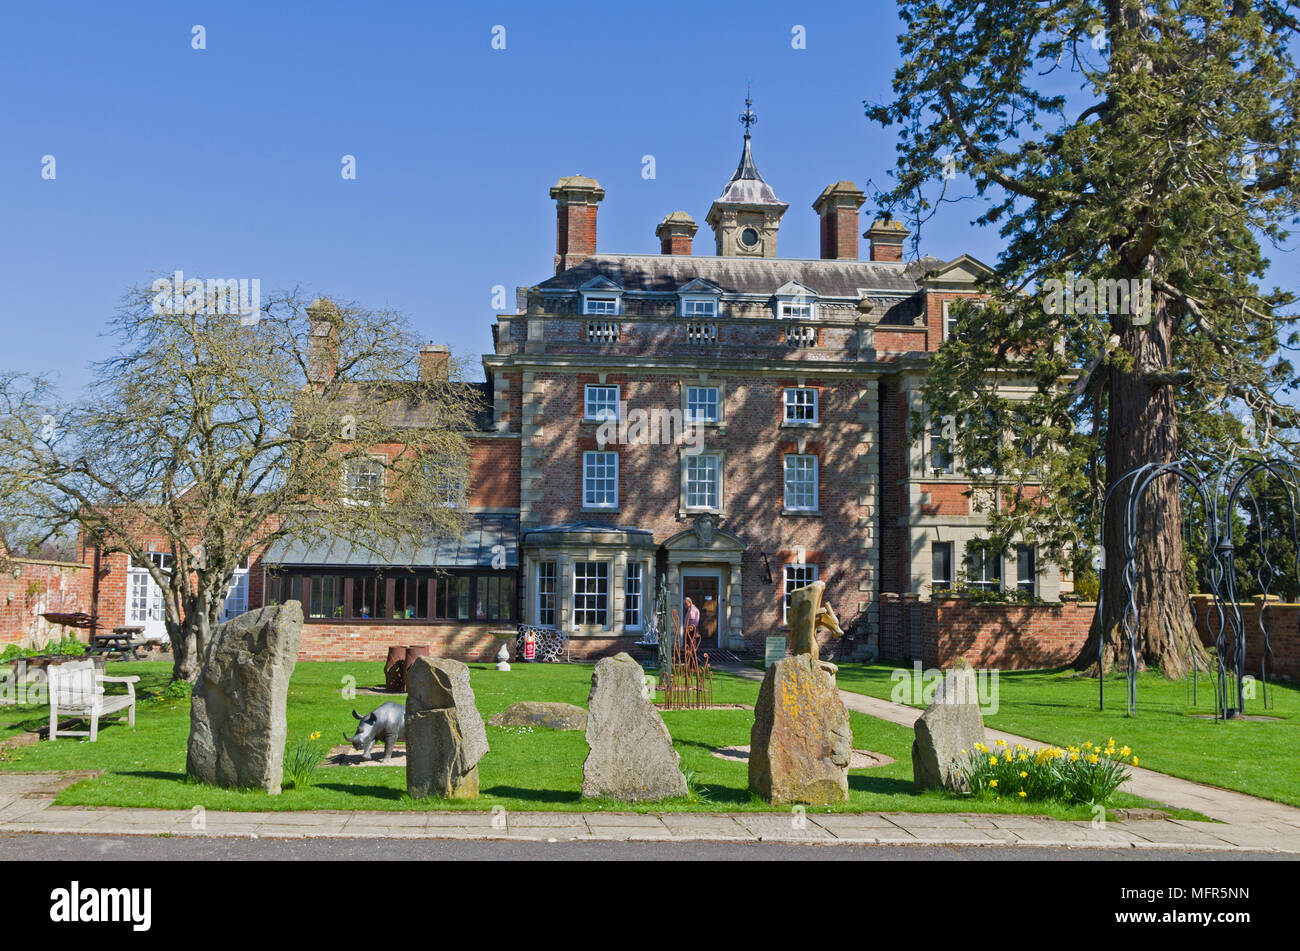 Wallsworth Hall, home to Nature In Art a museum and art gallery dedicated to art inspired by nature; Twigworth, Gloucester, UK - Stock Image